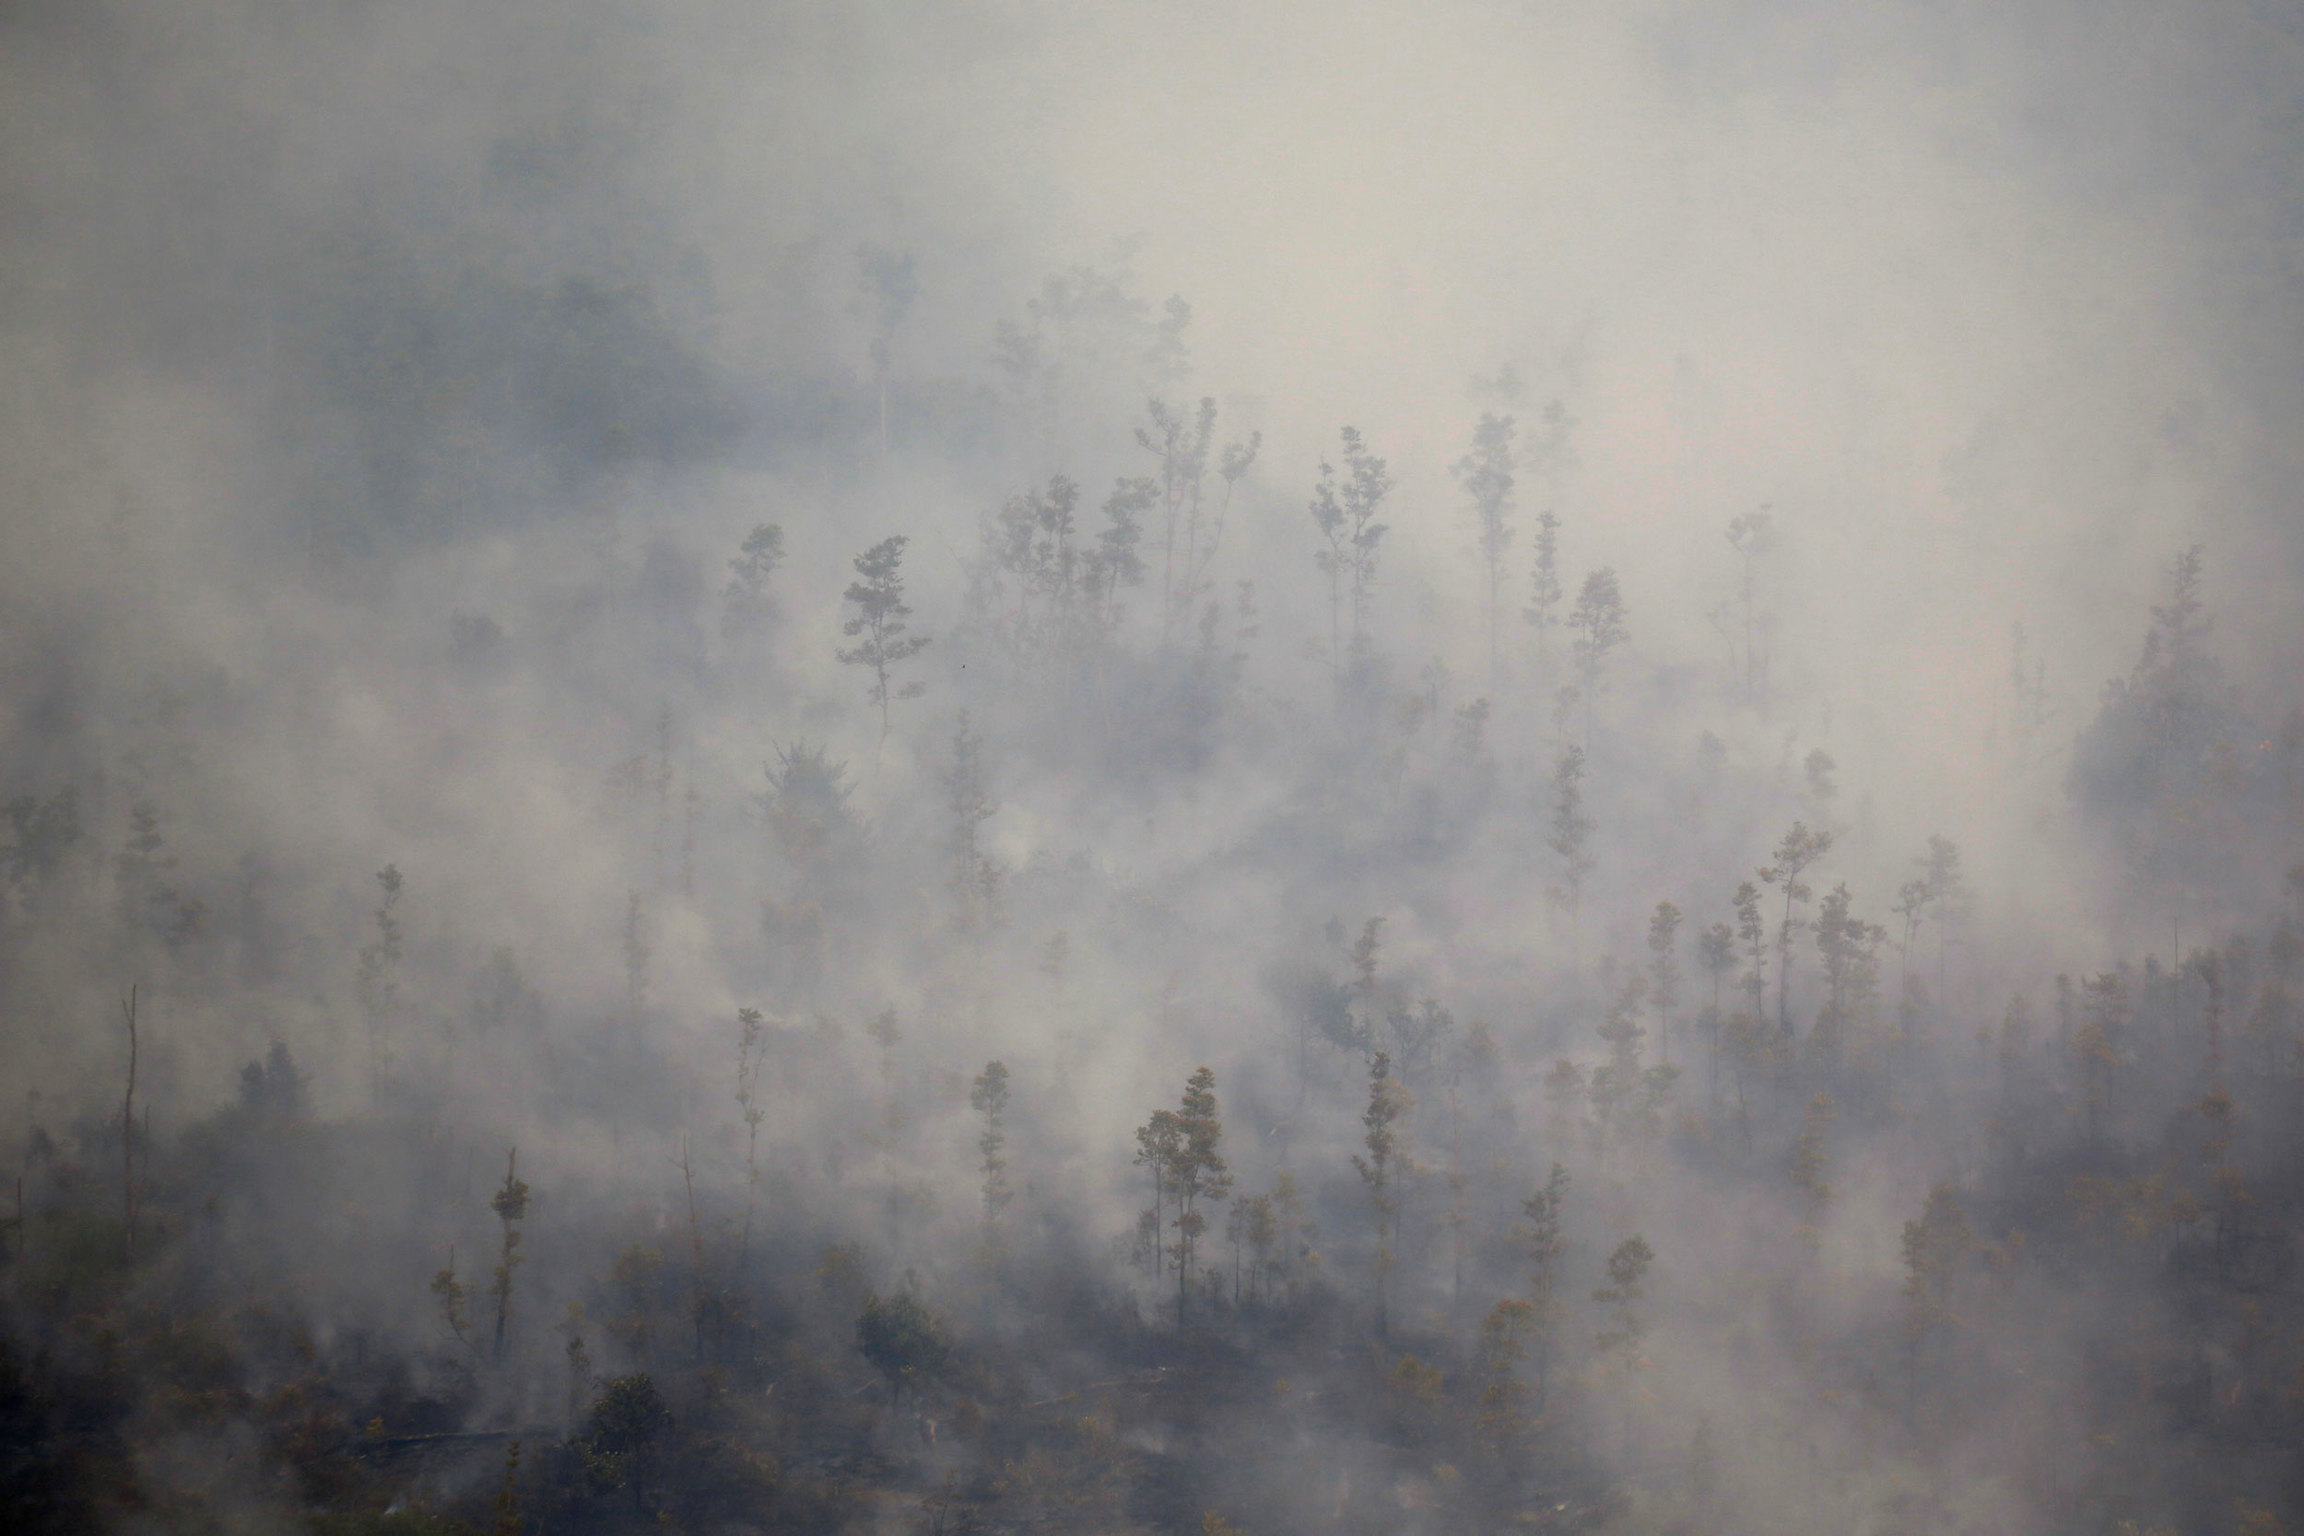 A forest is shown entirely filled with smoke.